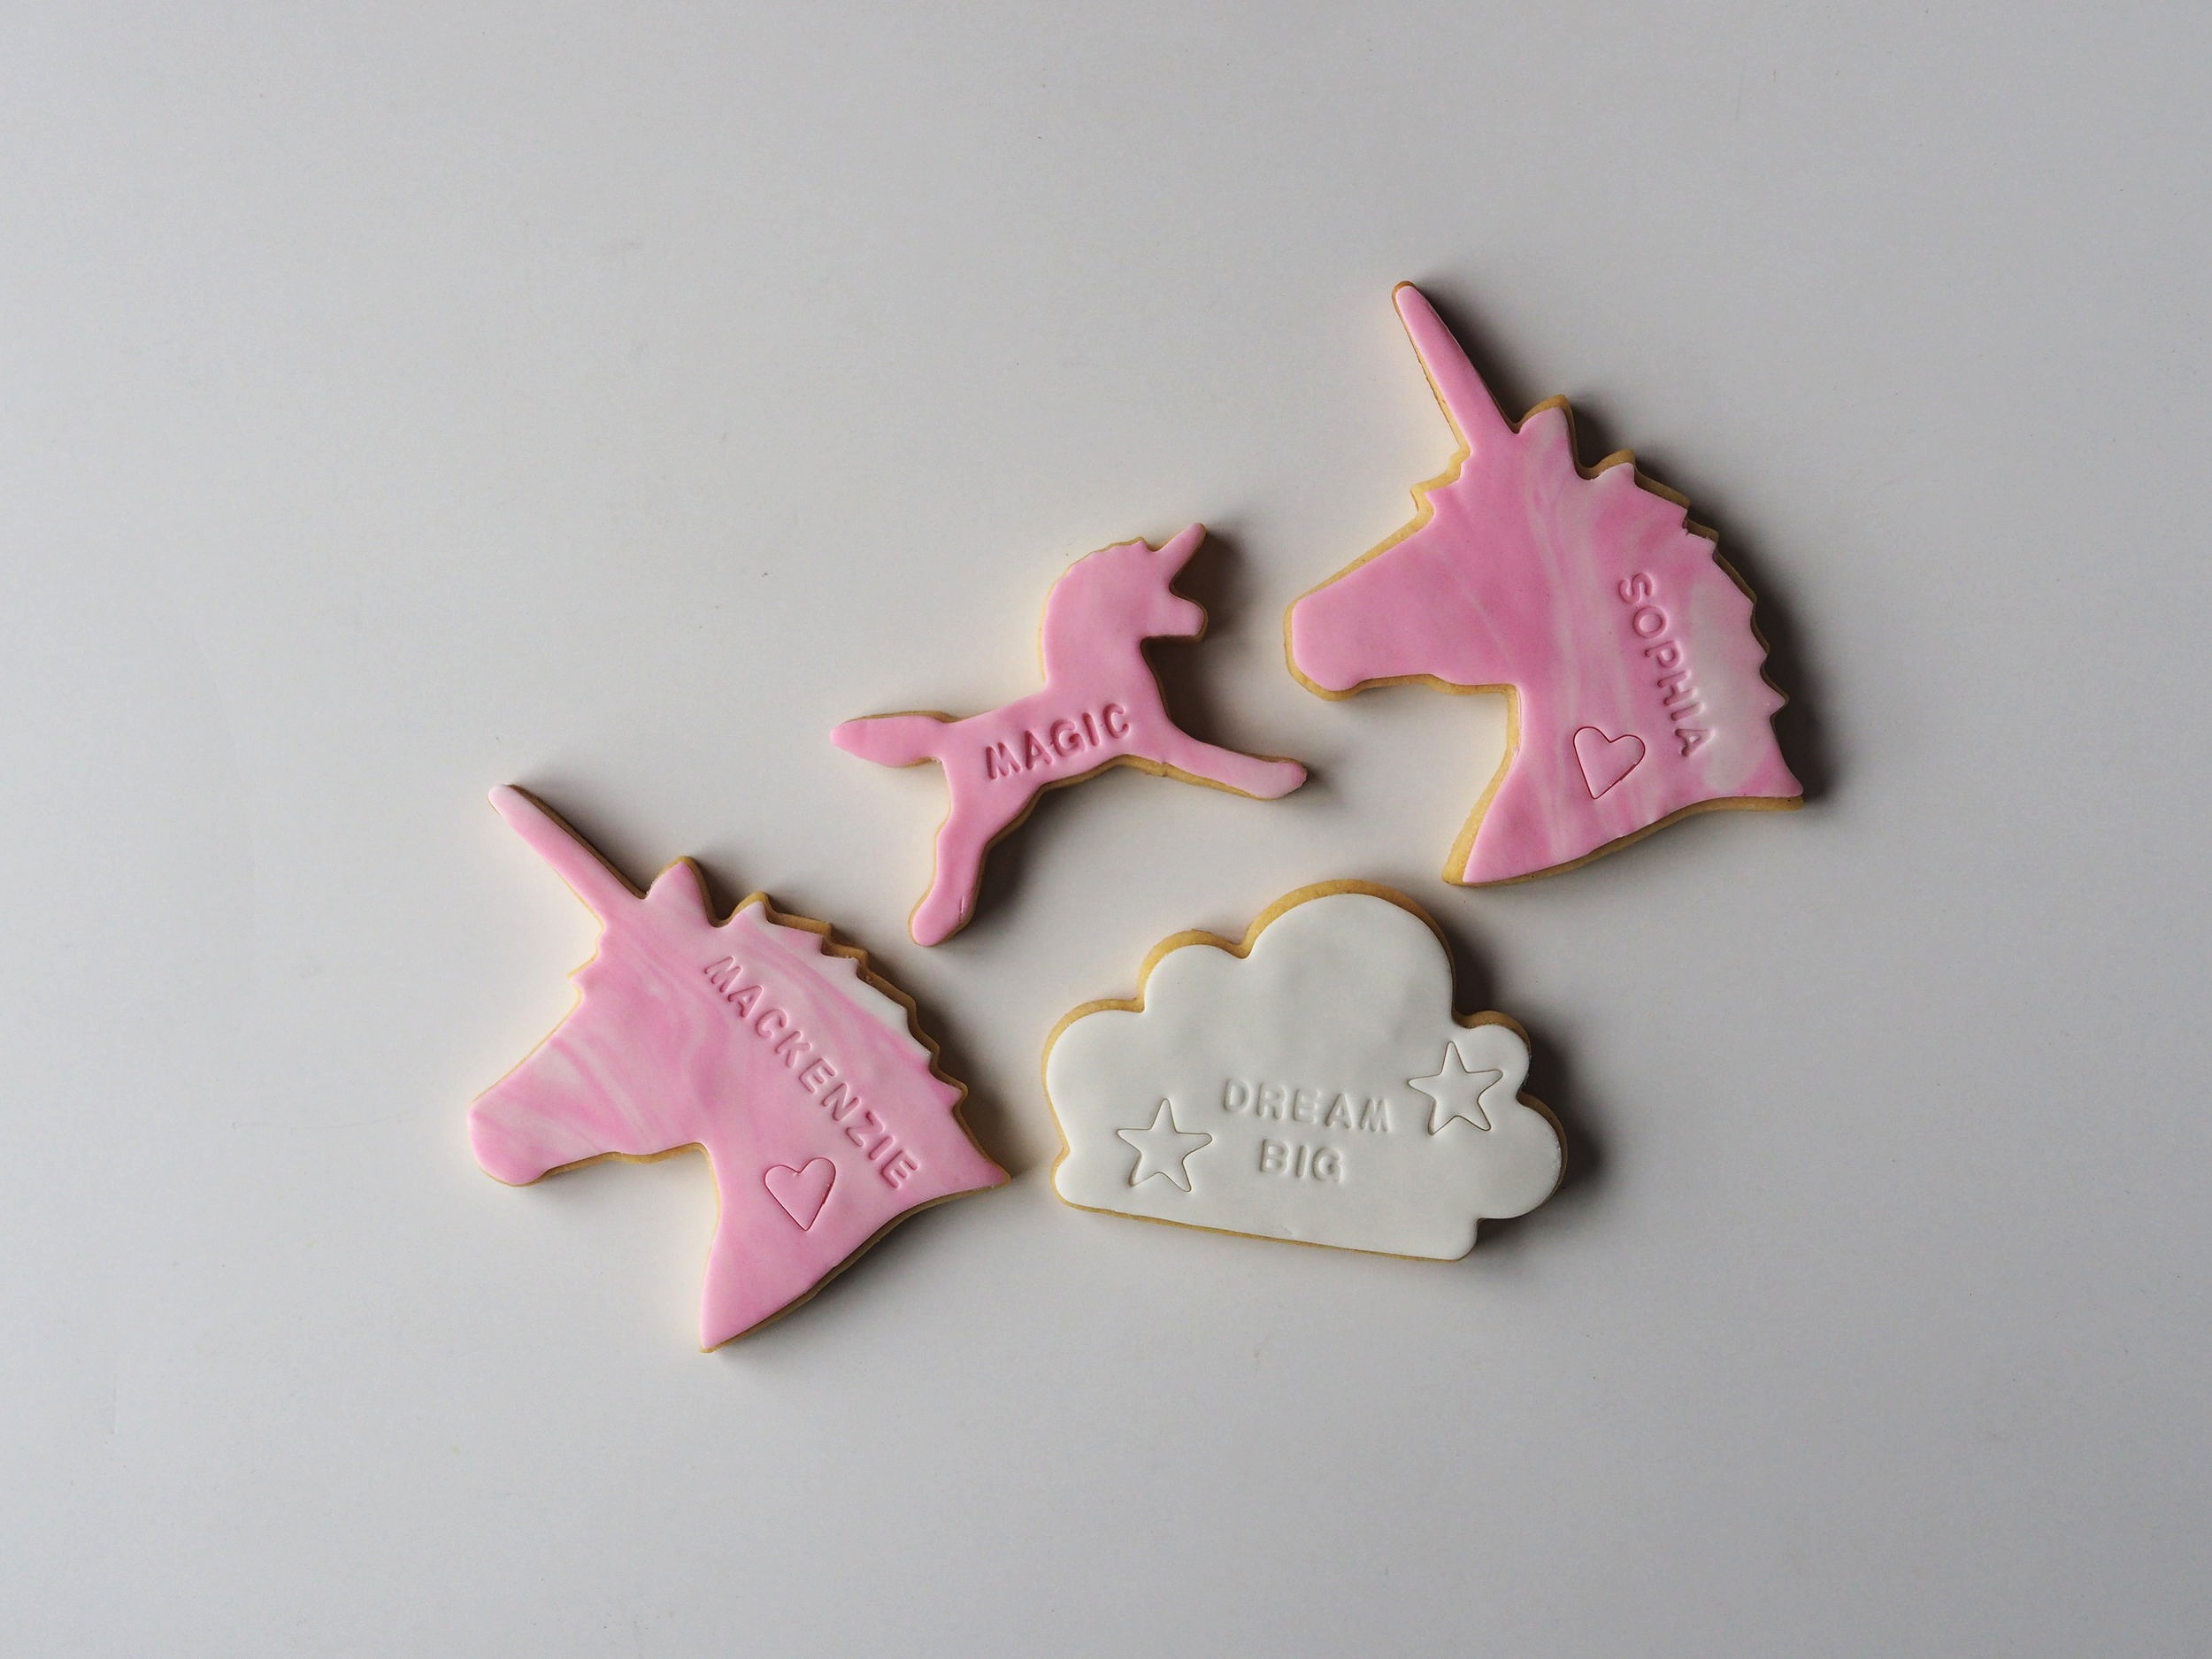 2018-04-30 Unicorn cookies 008.JPG